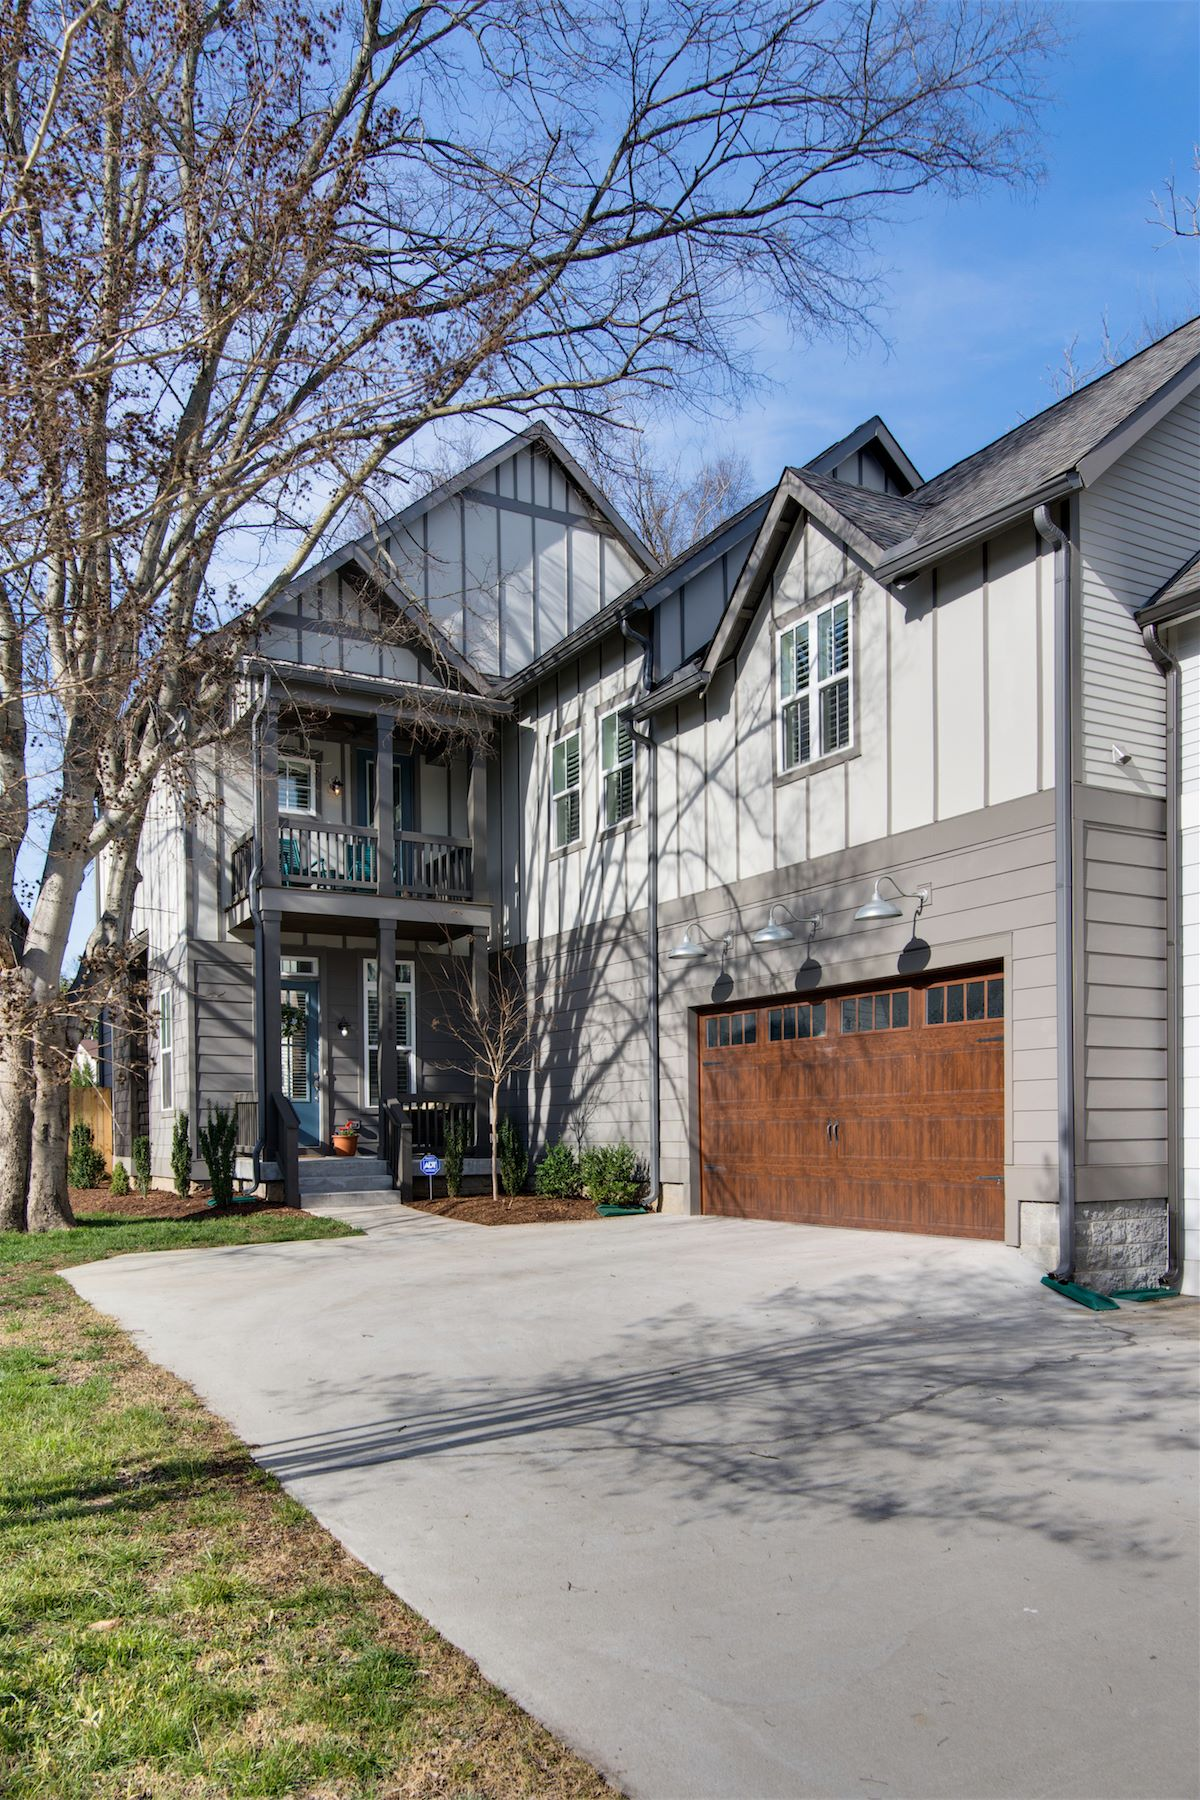 Single Family Home for Sale at Picture Perfect 12 South Home 908B Gale Ln Nashville, Tennessee, 37204 United States